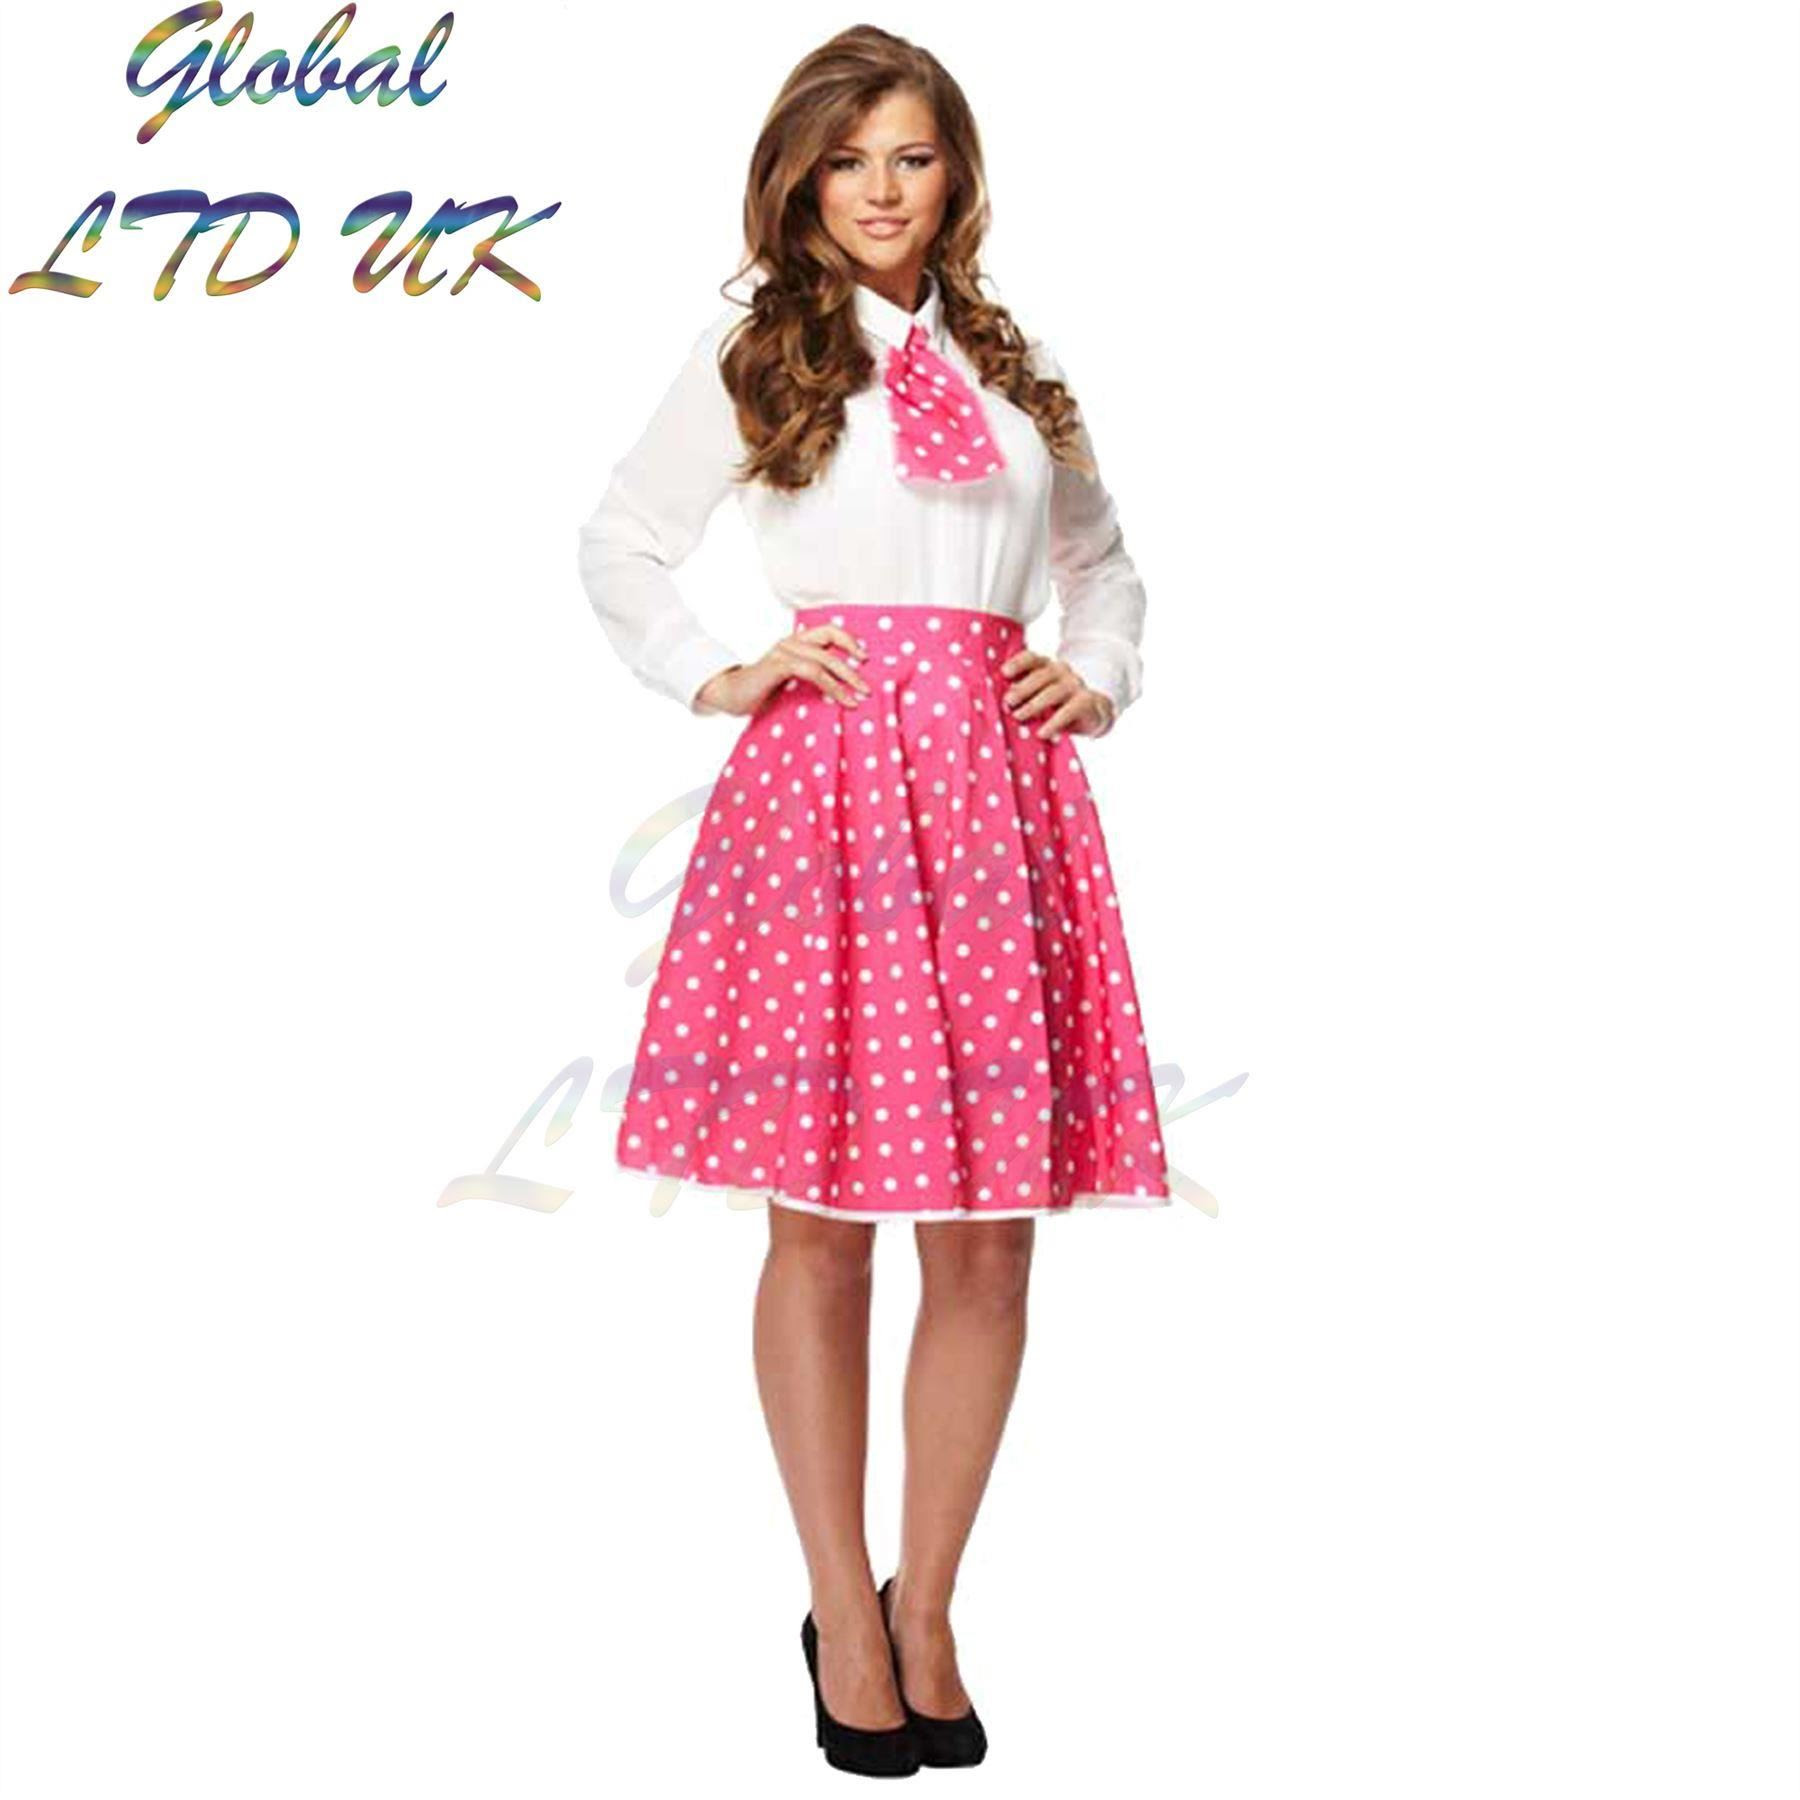 polka dot skirt dress and scarf outfit girls fancy costume